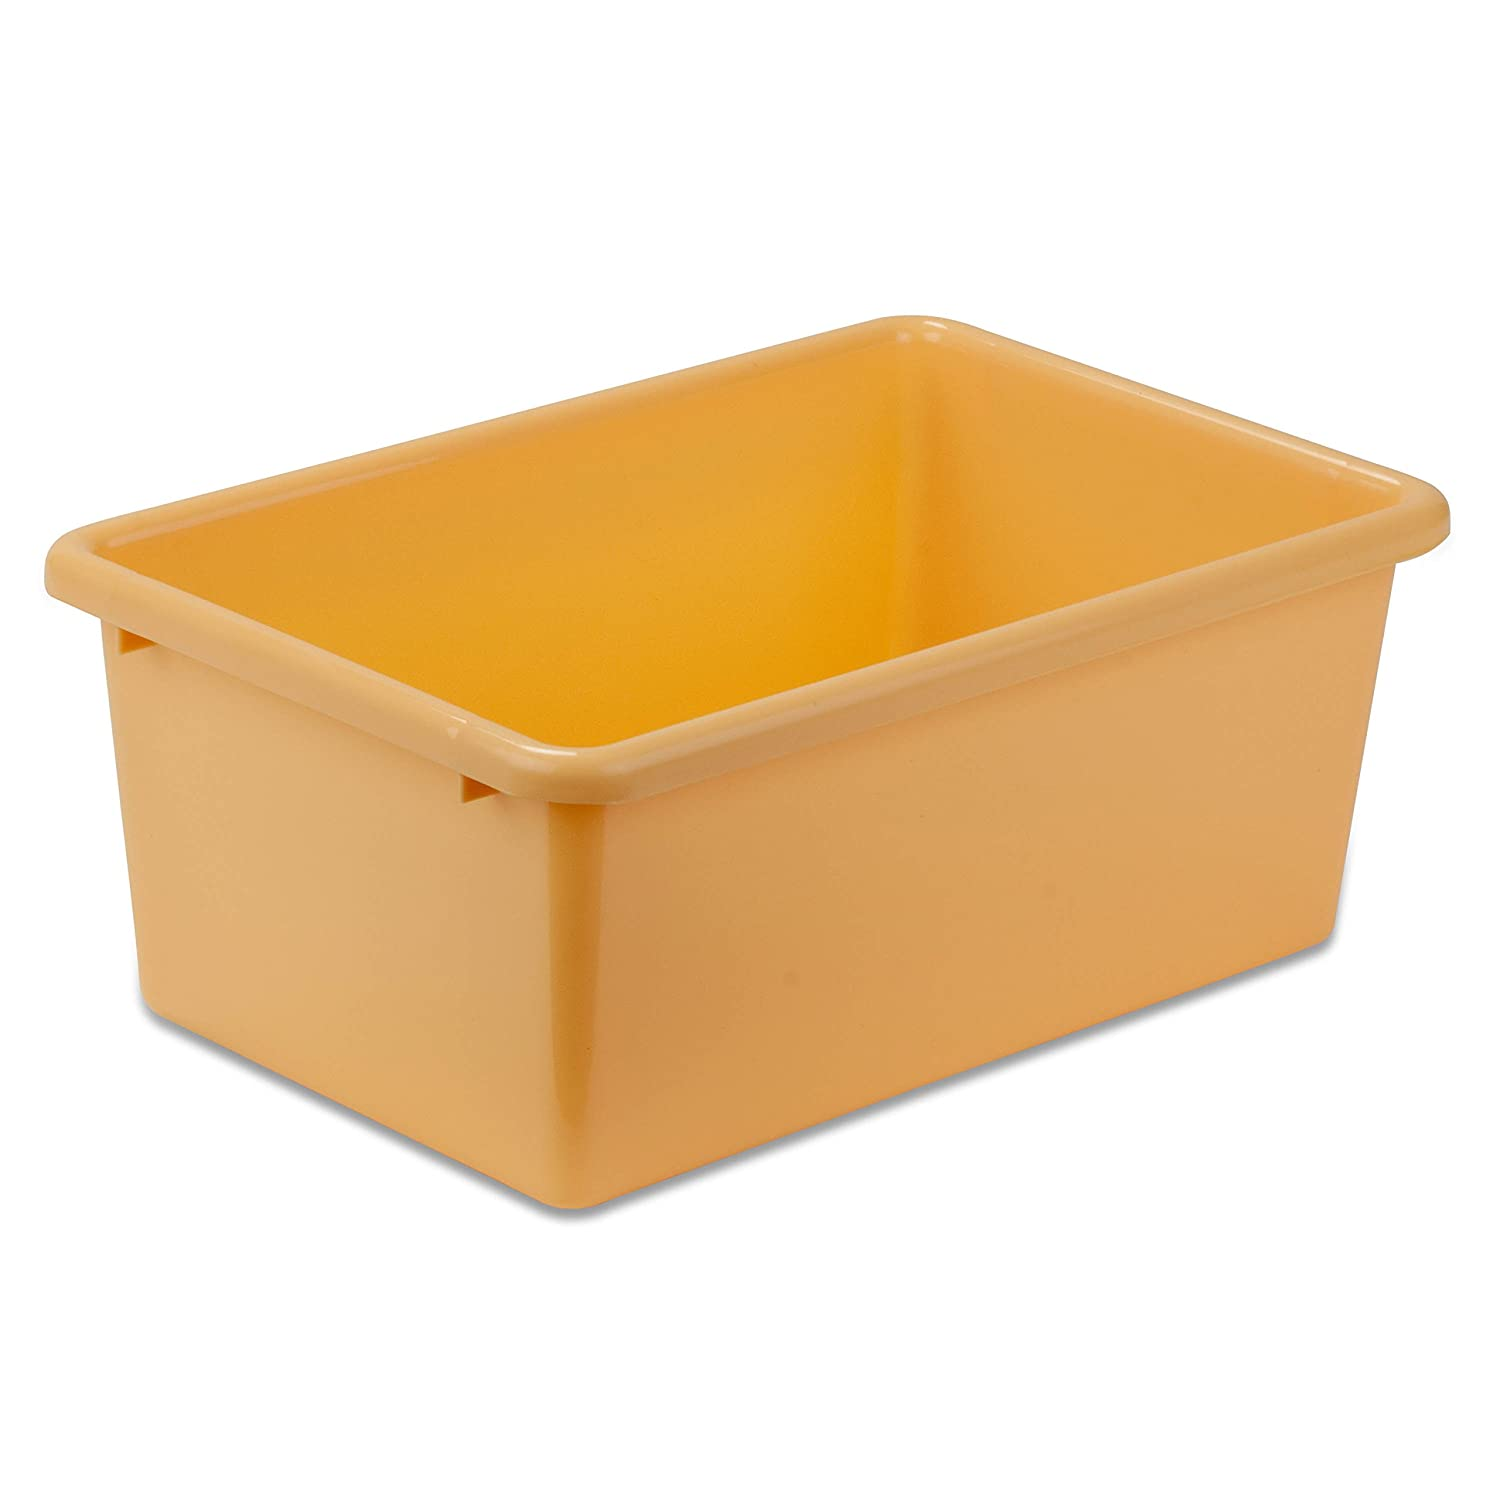 Honey Can Do PRT SRT1602 SMBLU Plastic Storage Bin, Small, Blue Honey Can Do  International